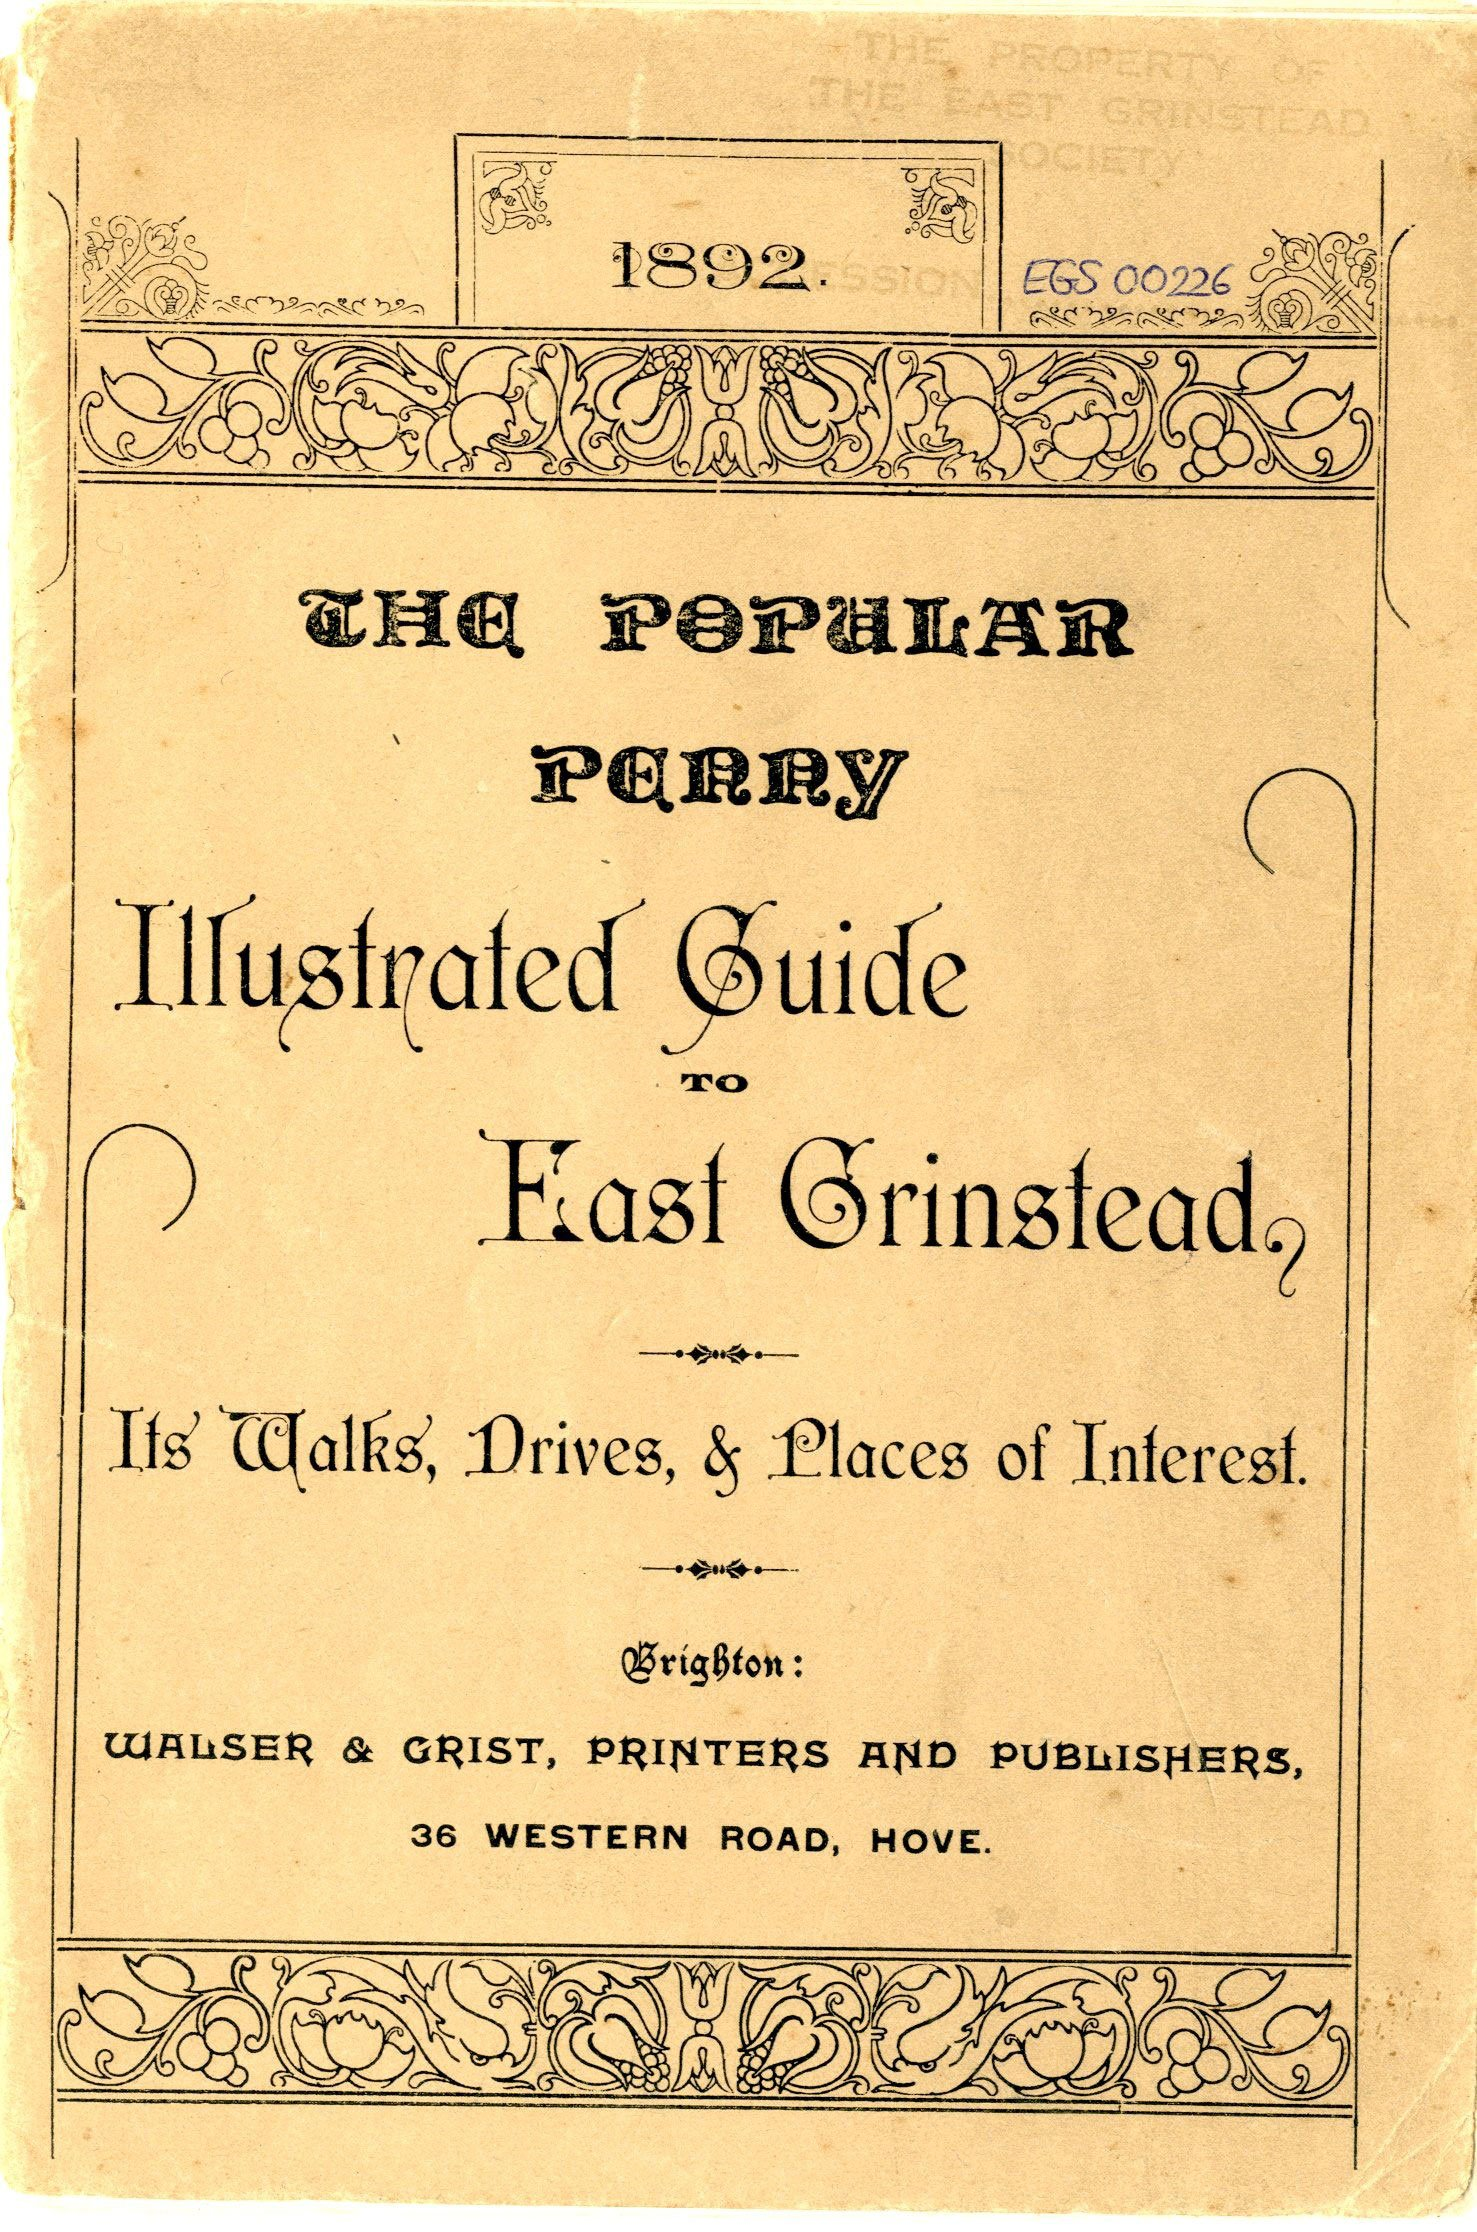 East Grinstead Museum – The Popular Penny Illustred Guide to East Grinstead